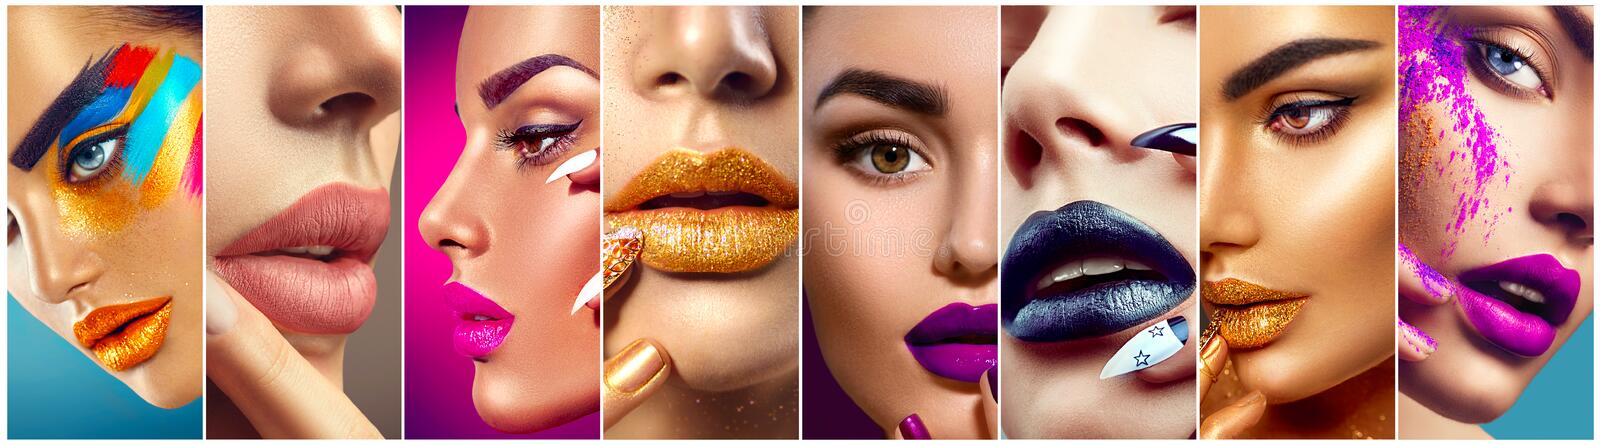 Download Makeup Collage. Colorful Lips, Eyes, Eyeshadows And Nail Art Stock Photo - Image of black, colour: 88939394